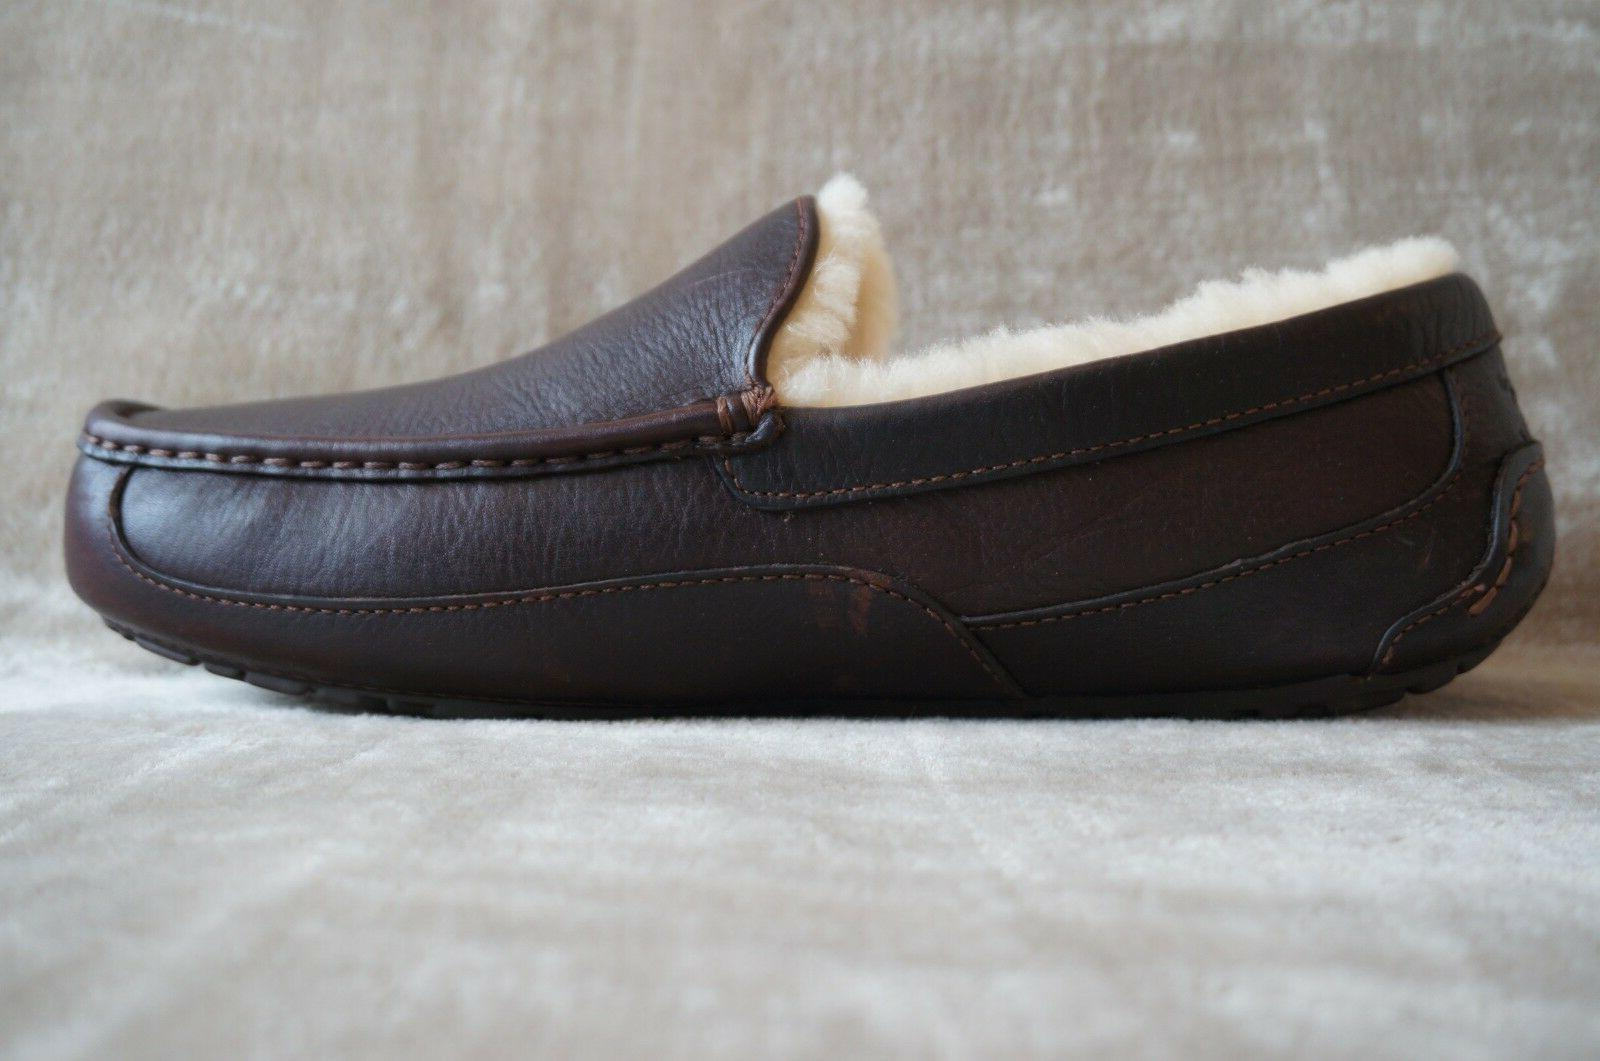 UGG ASCOT LEATHER SLIPPERS 10 WIDE CHINA